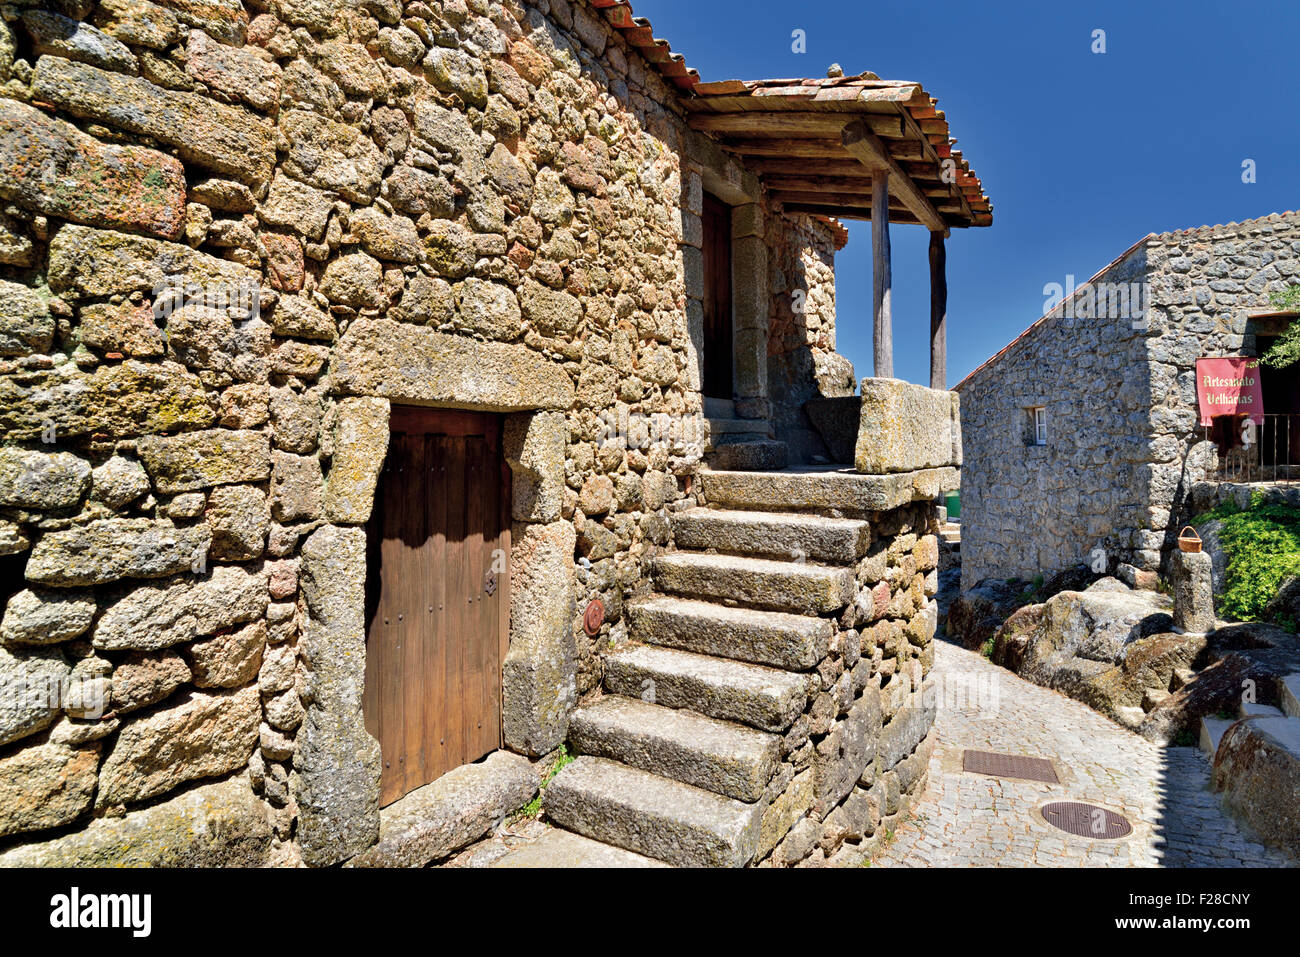 Portugal: Restored stone house in the historic village Monsanto - Stock Image